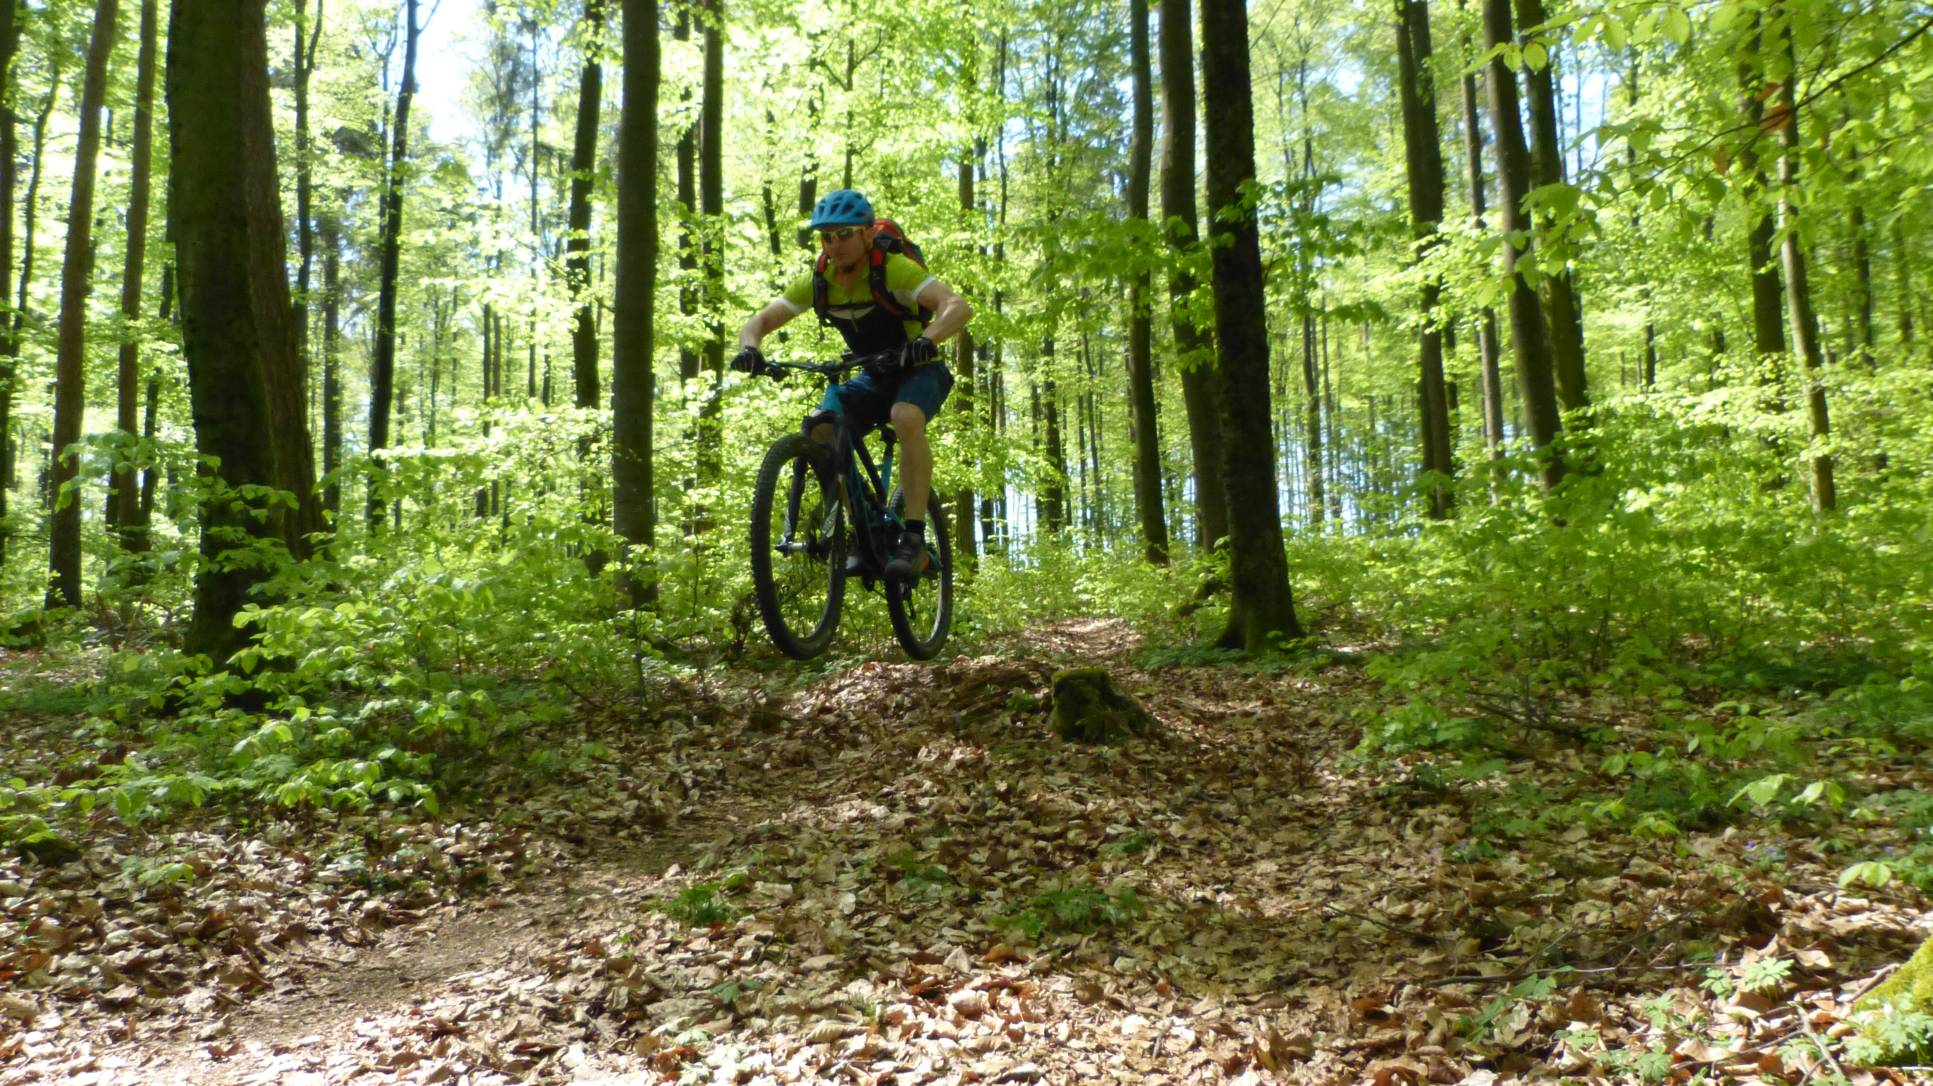 Robert, CLARO BIKETOURS, Mountainbike, Trail, Weißenburg